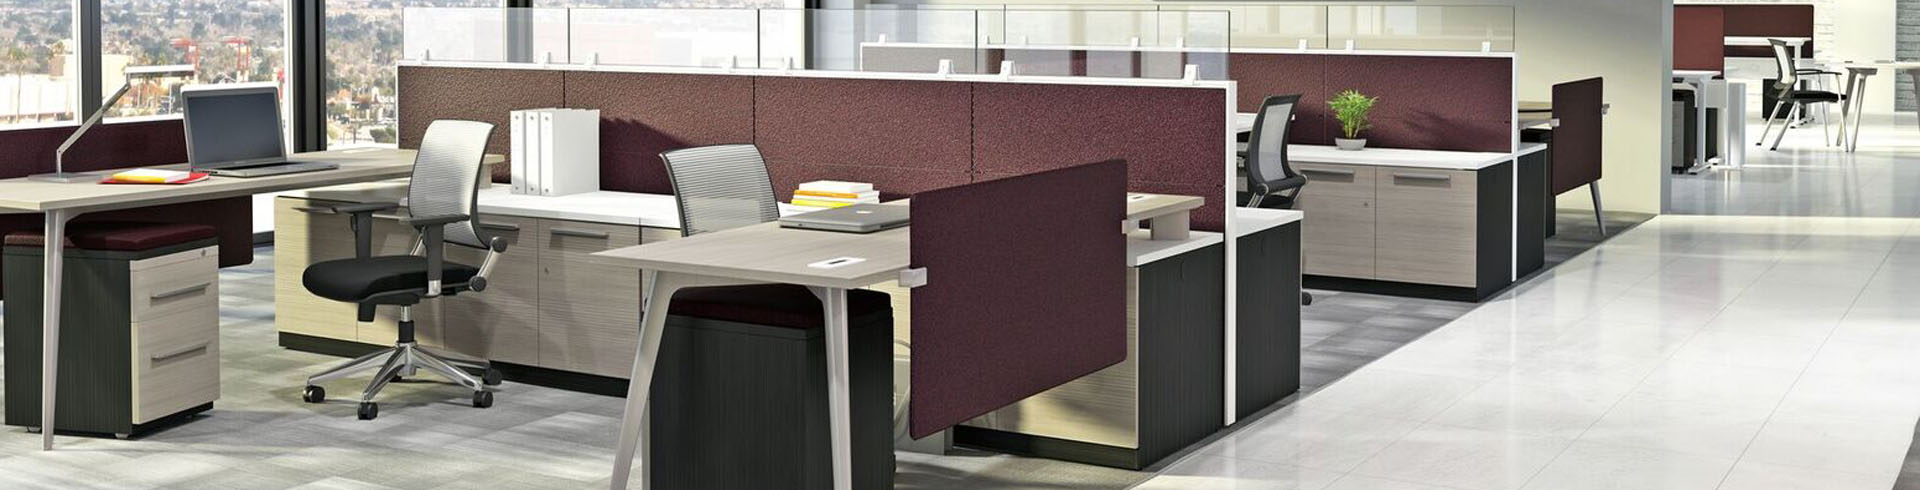 Everything For Offices   New   Used Office Furniture in Denver and     Shop Office Suites